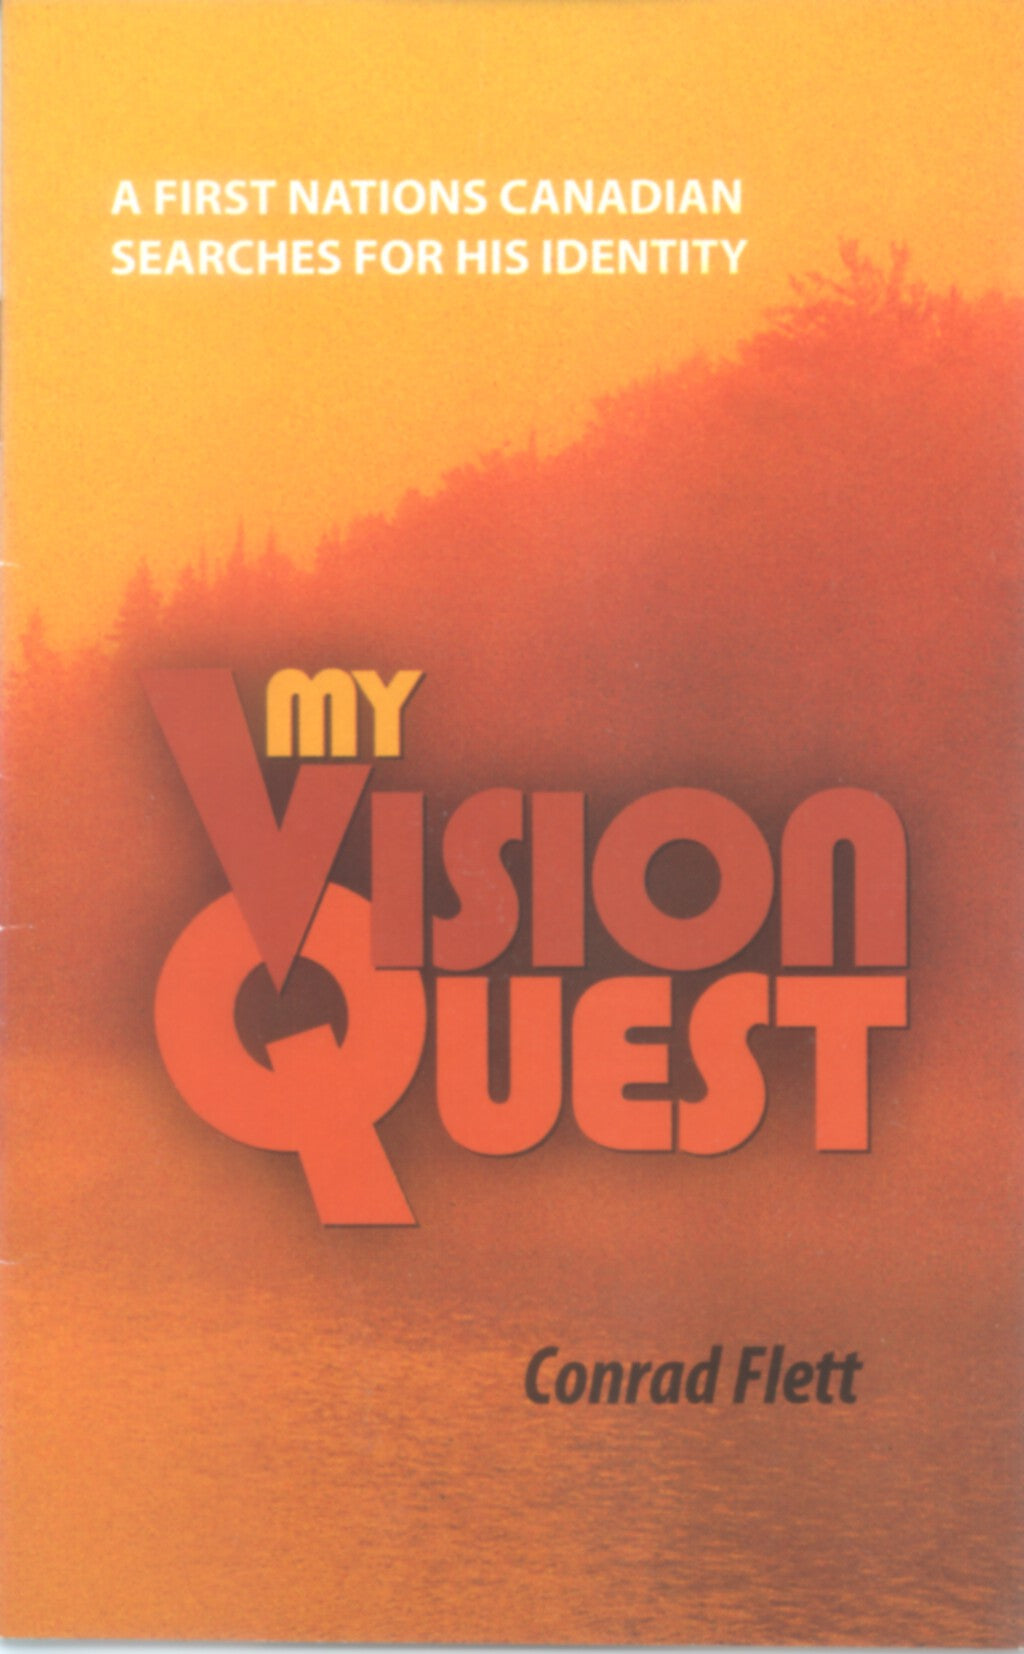 My Vision Quest